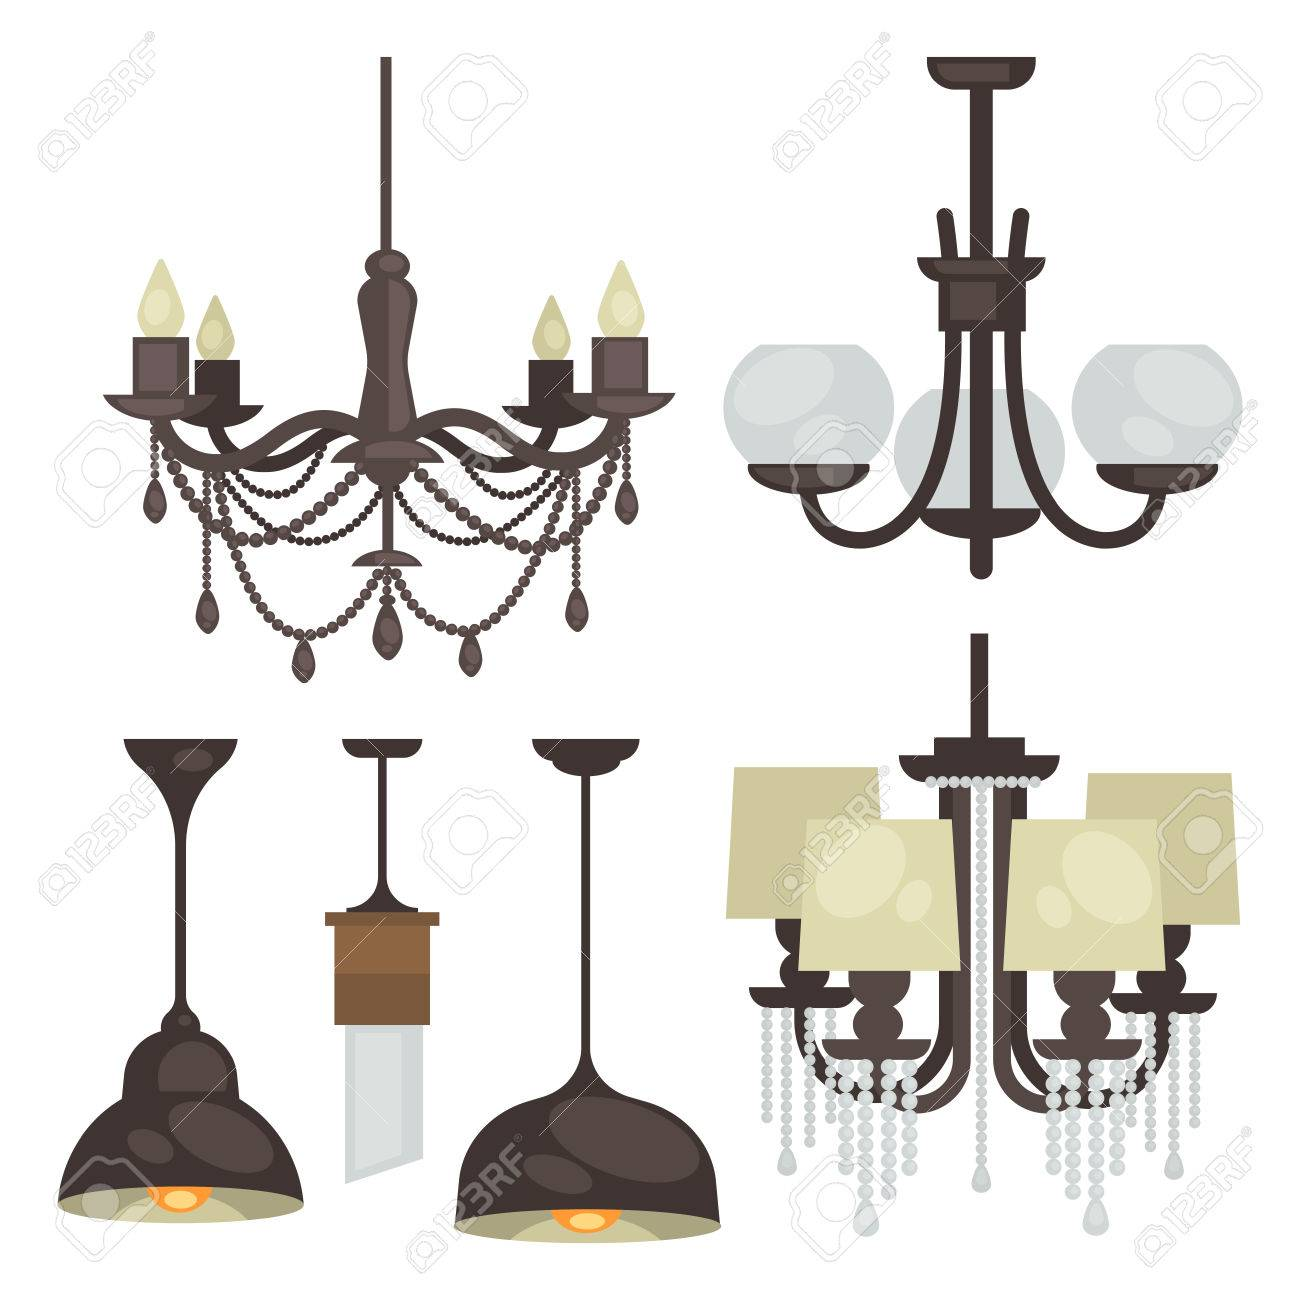 Lamp Set Isolated. Interior Light Design. Electricity Lamps. Chandeliers  Lamps Light Interior Decoration